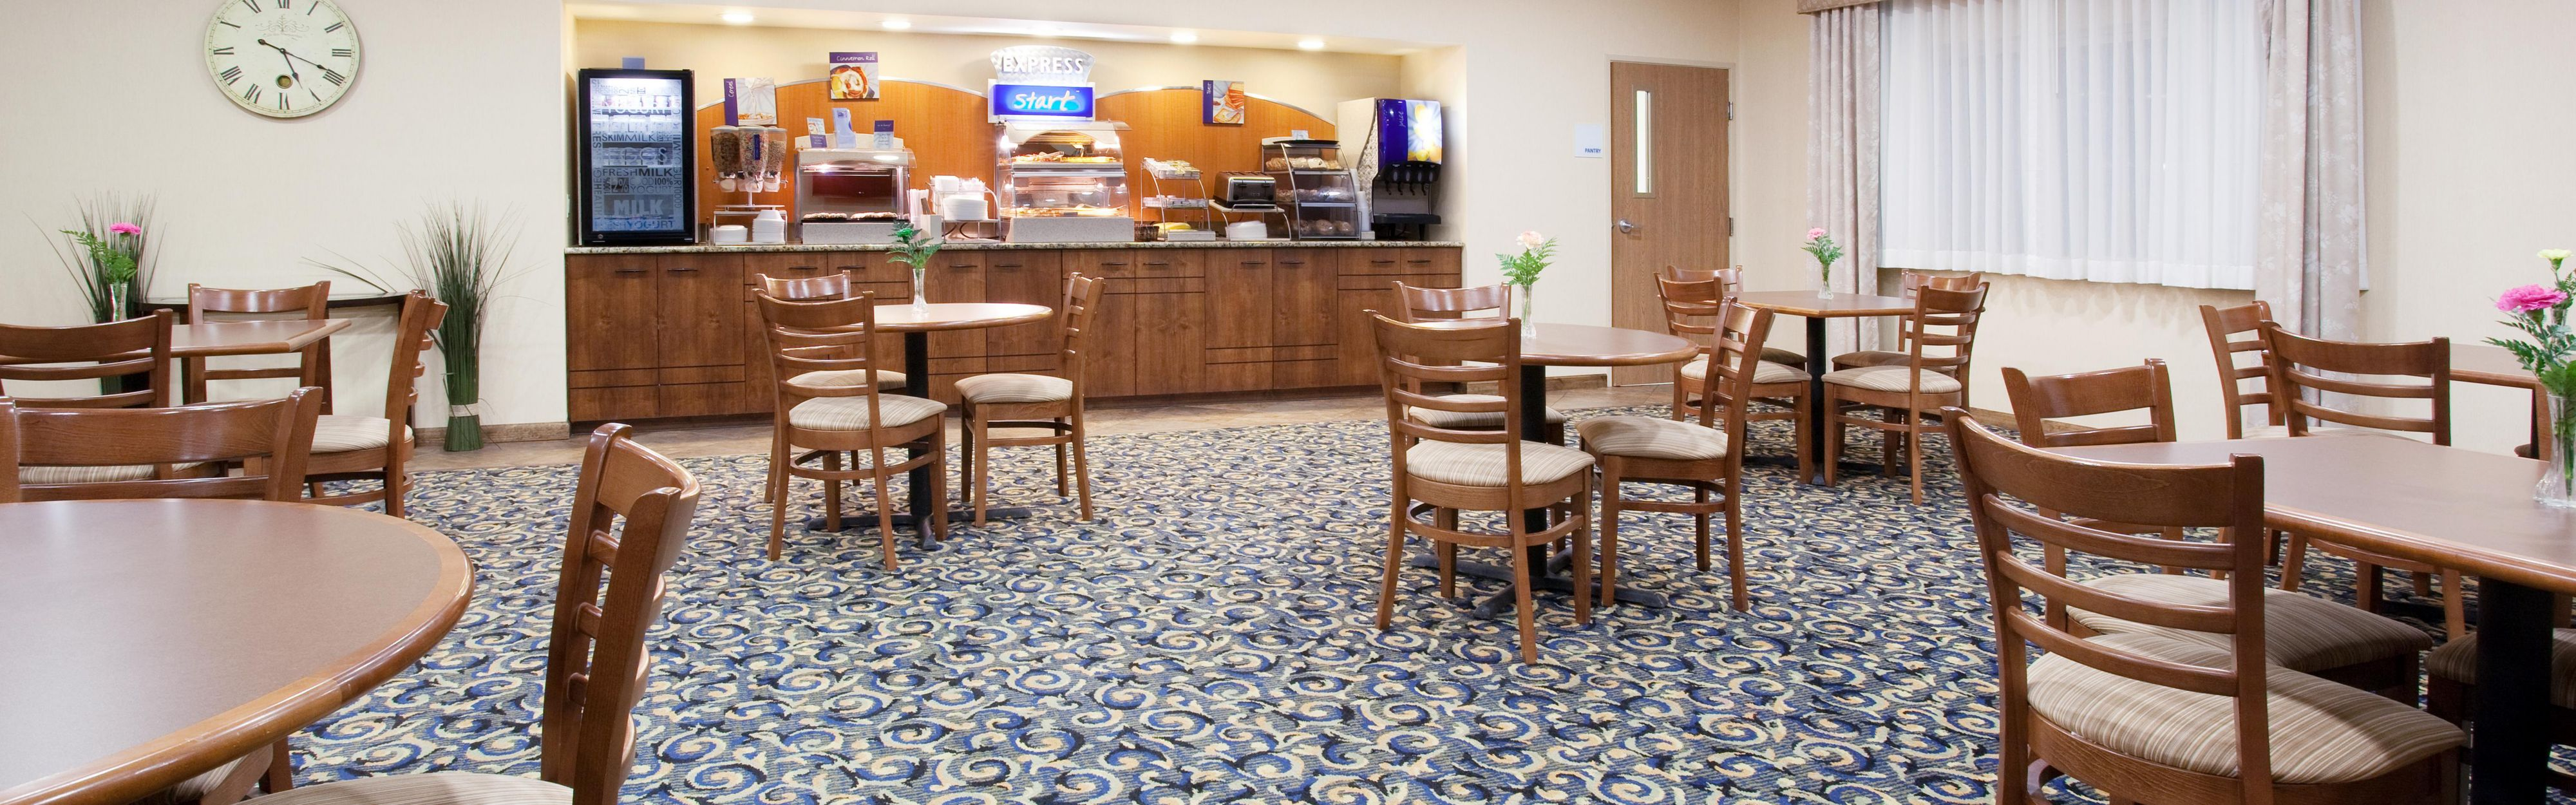 Holiday Inn Express & Suites Torrington image 3